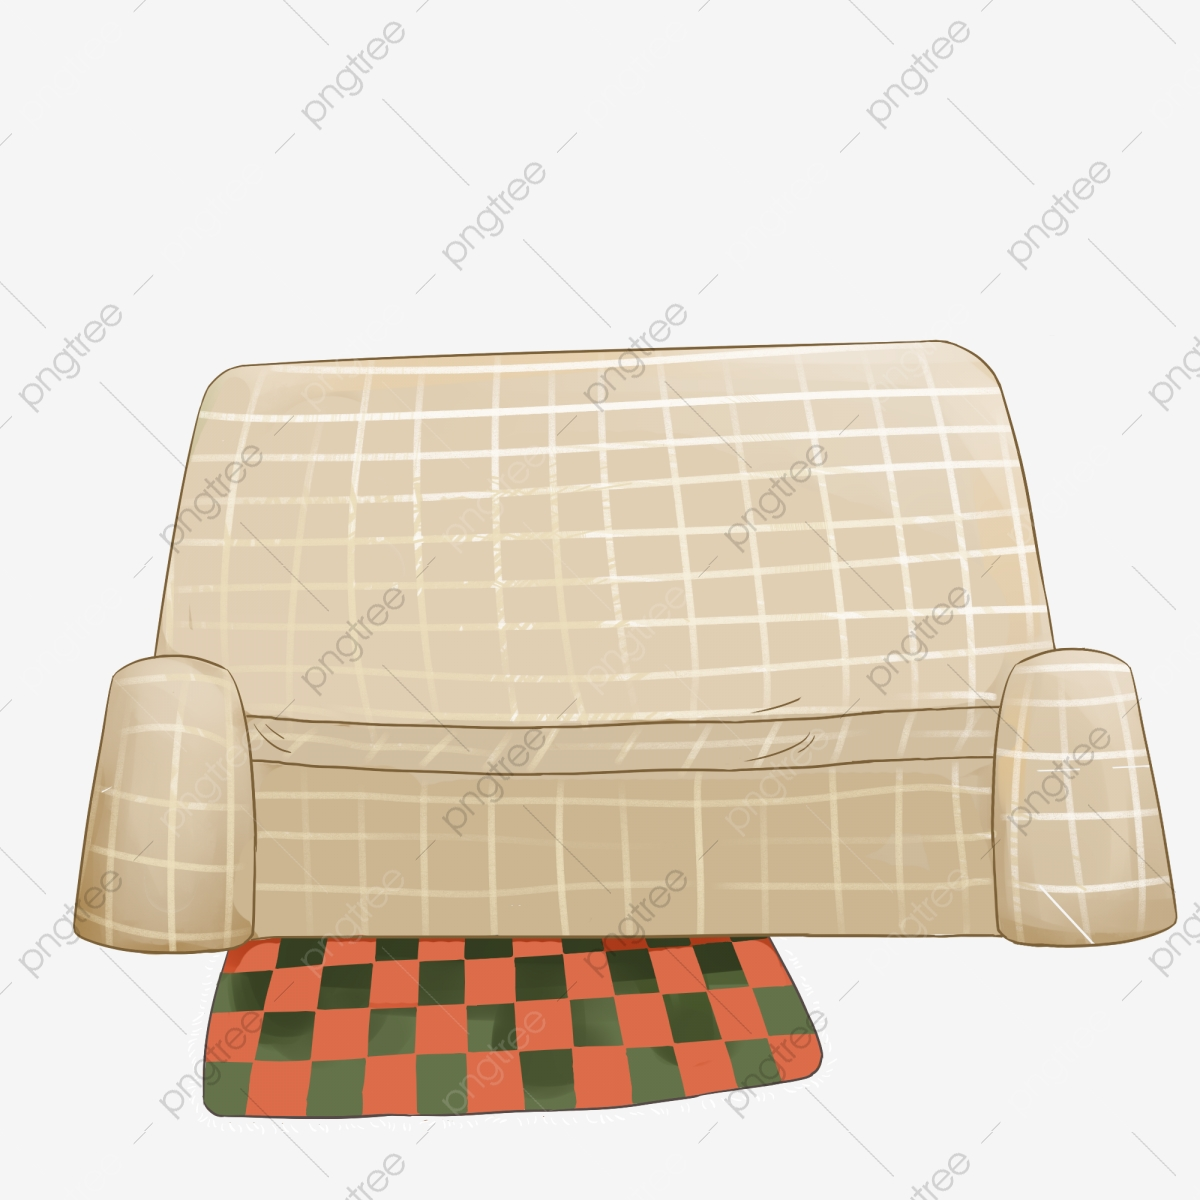 hand painted modern furniture sofa carpet illustration hand painted png transparent clipart image and psd file for free download https pngtree com freepng hand painted modern furniture sofa 3891480 html